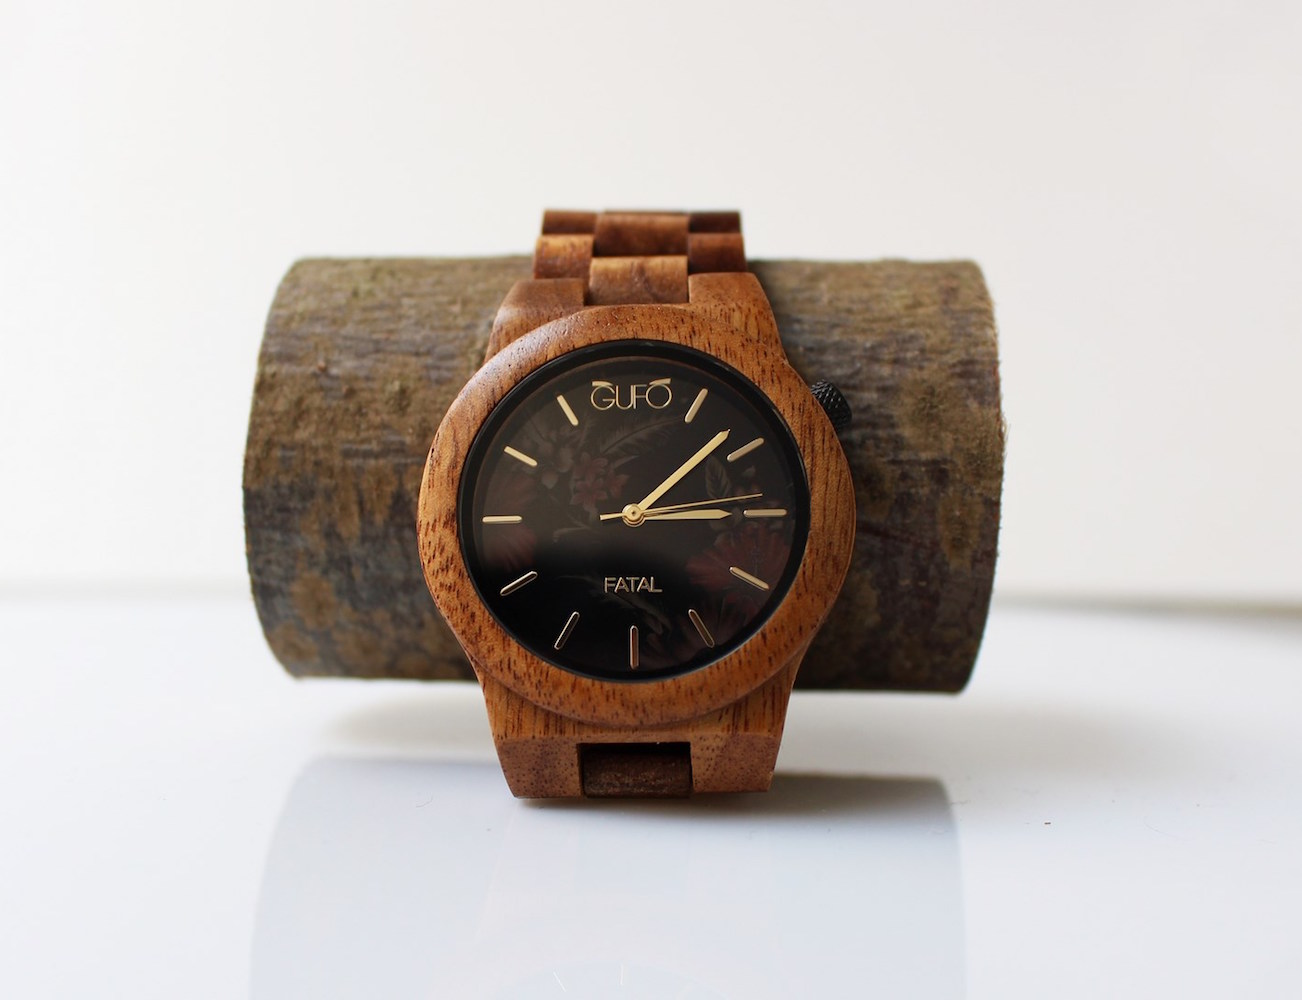 Fatal Wooden Watch by GUFO Italy